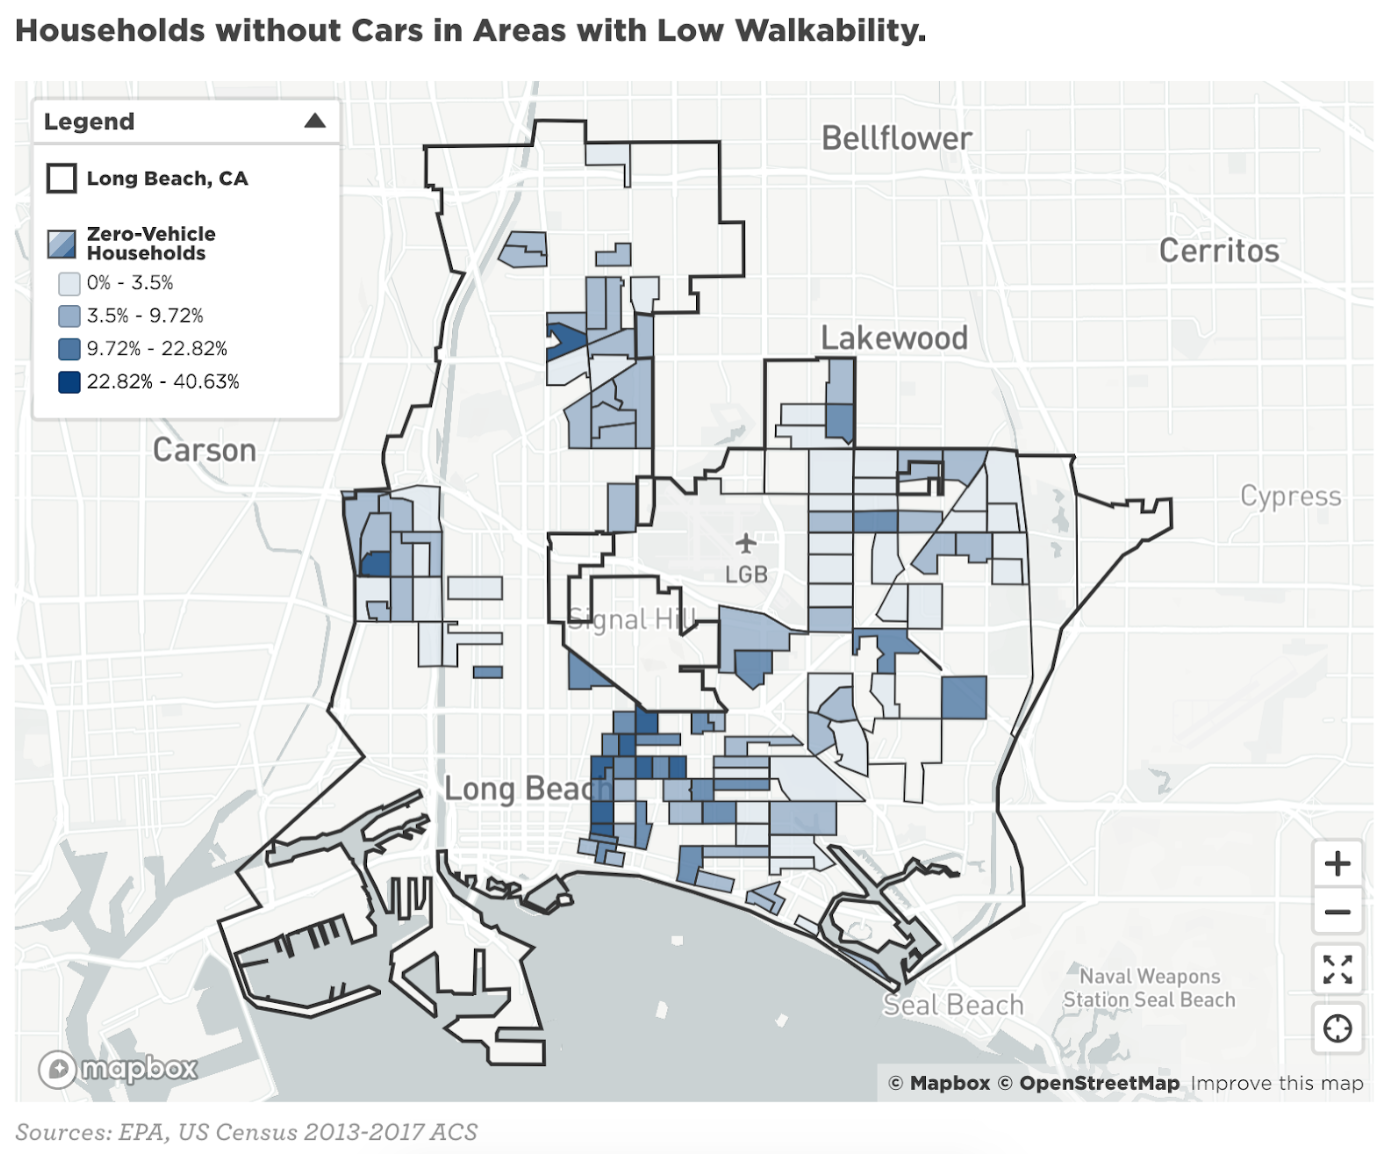 households without cars in areas with low walkability